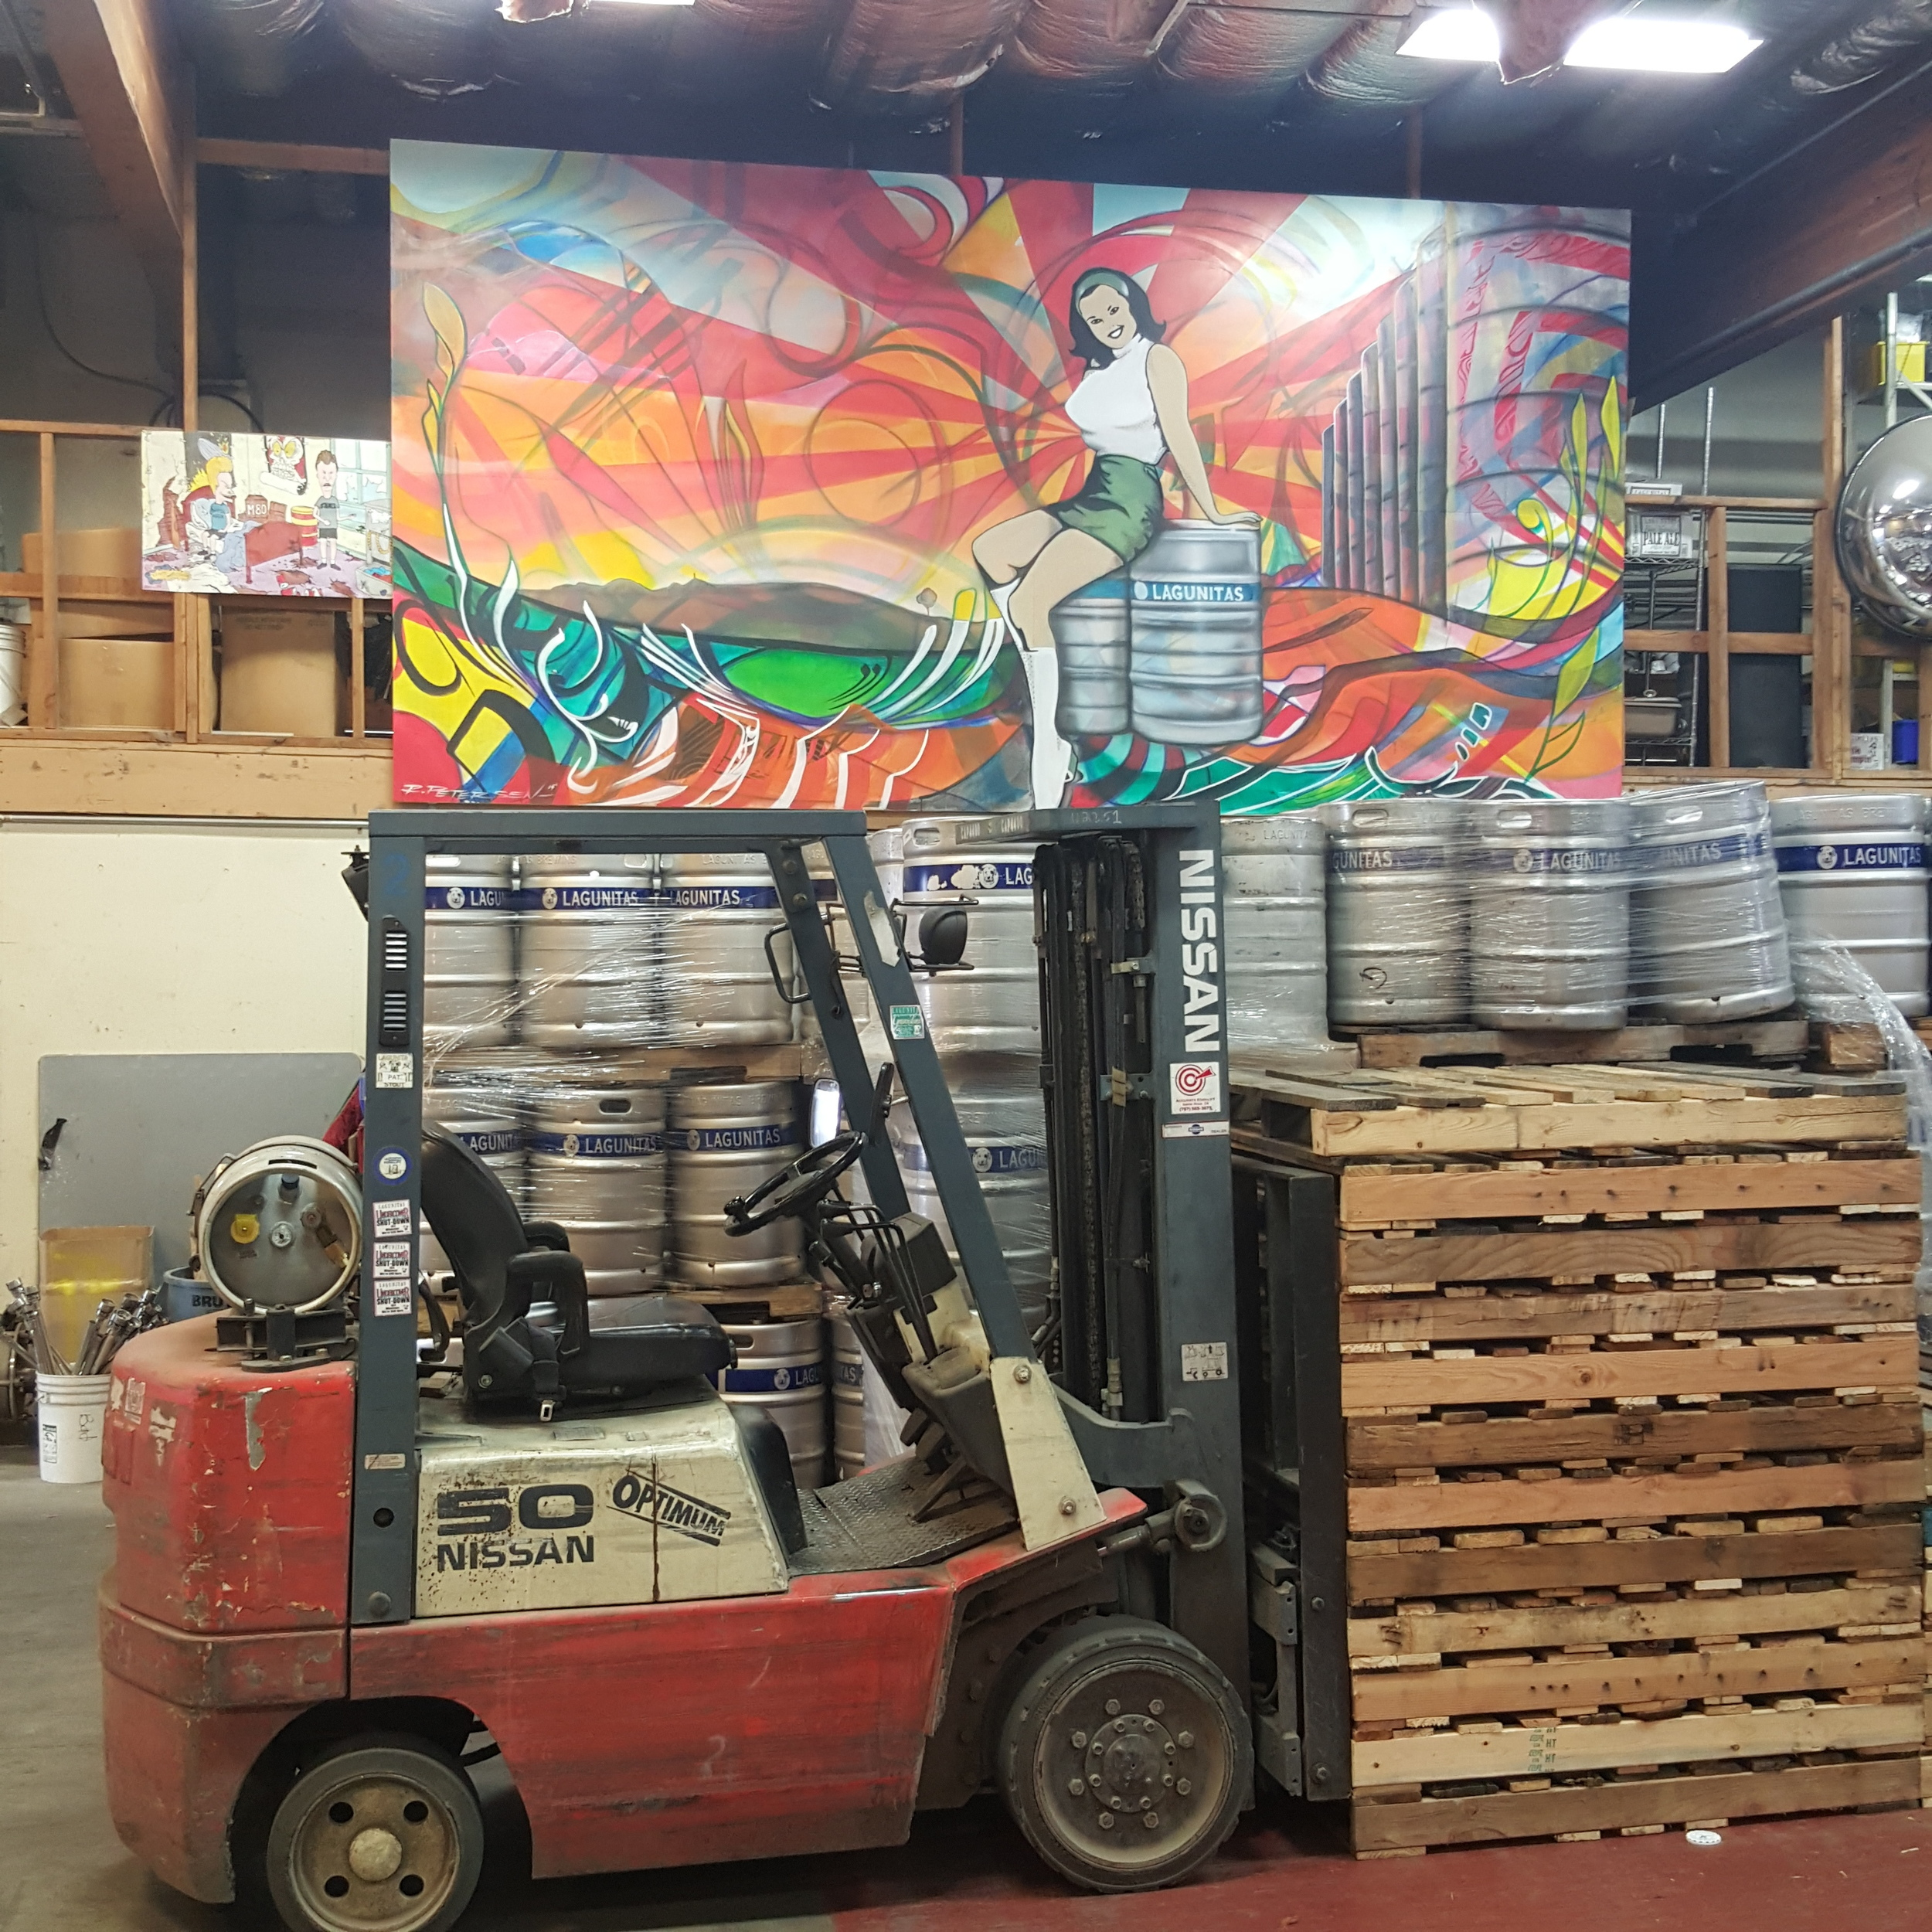 I love a mural in a brewery. So much character at Lagunitas.